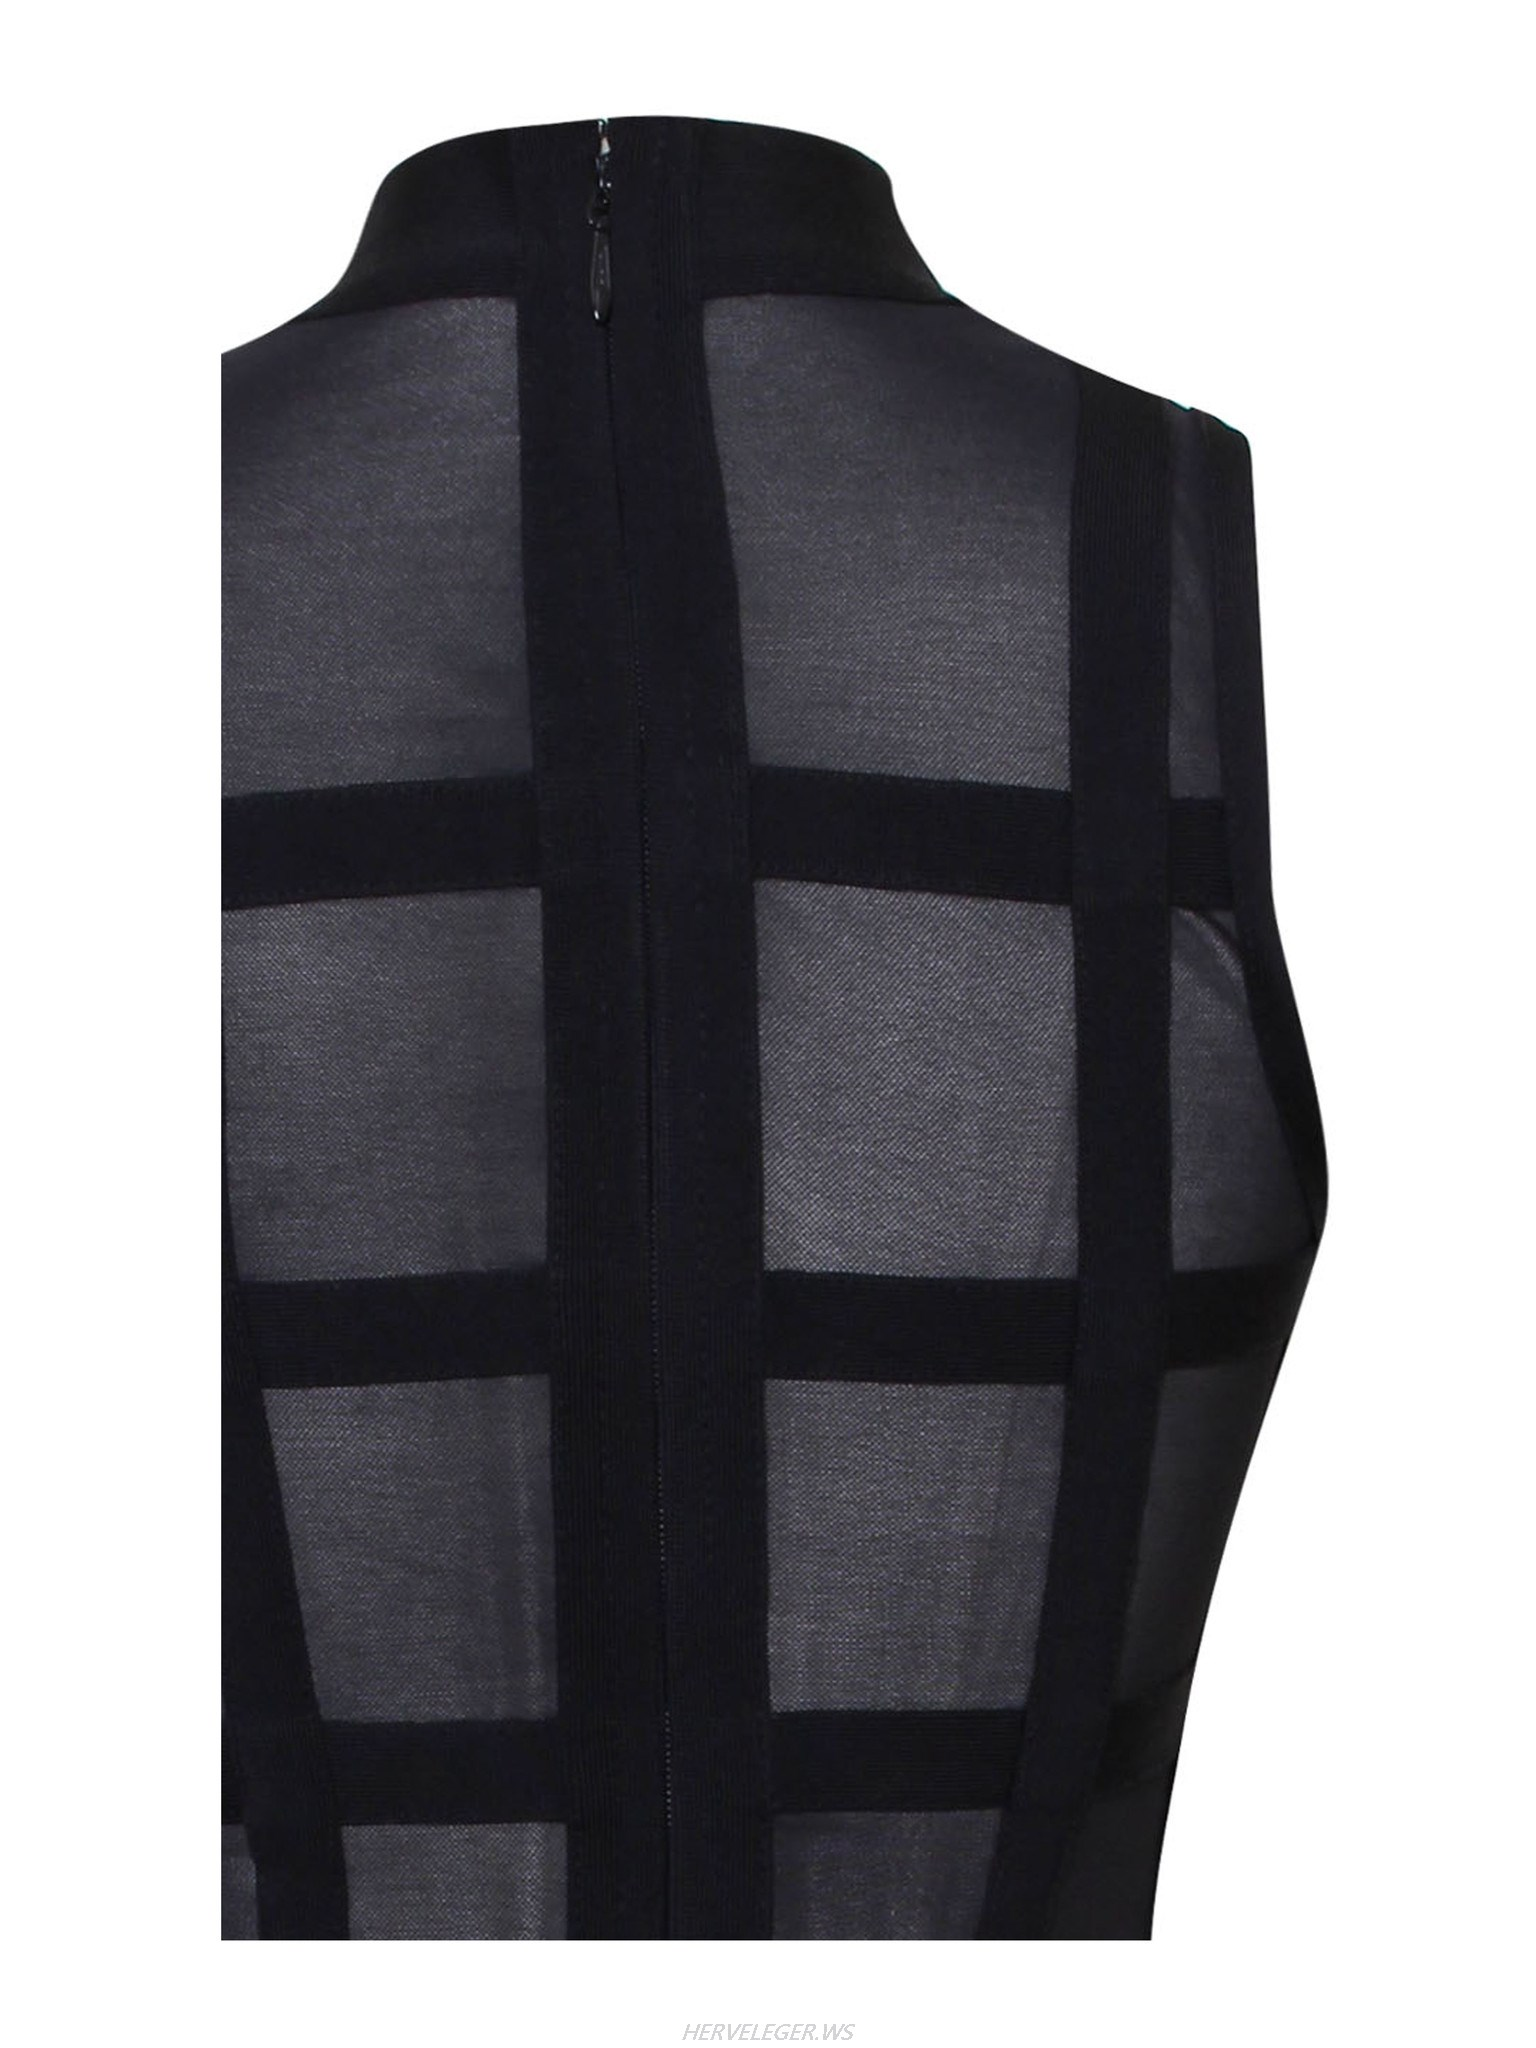 Herve Leger Mareva Black Turtleneck Neckline Mesh Dress